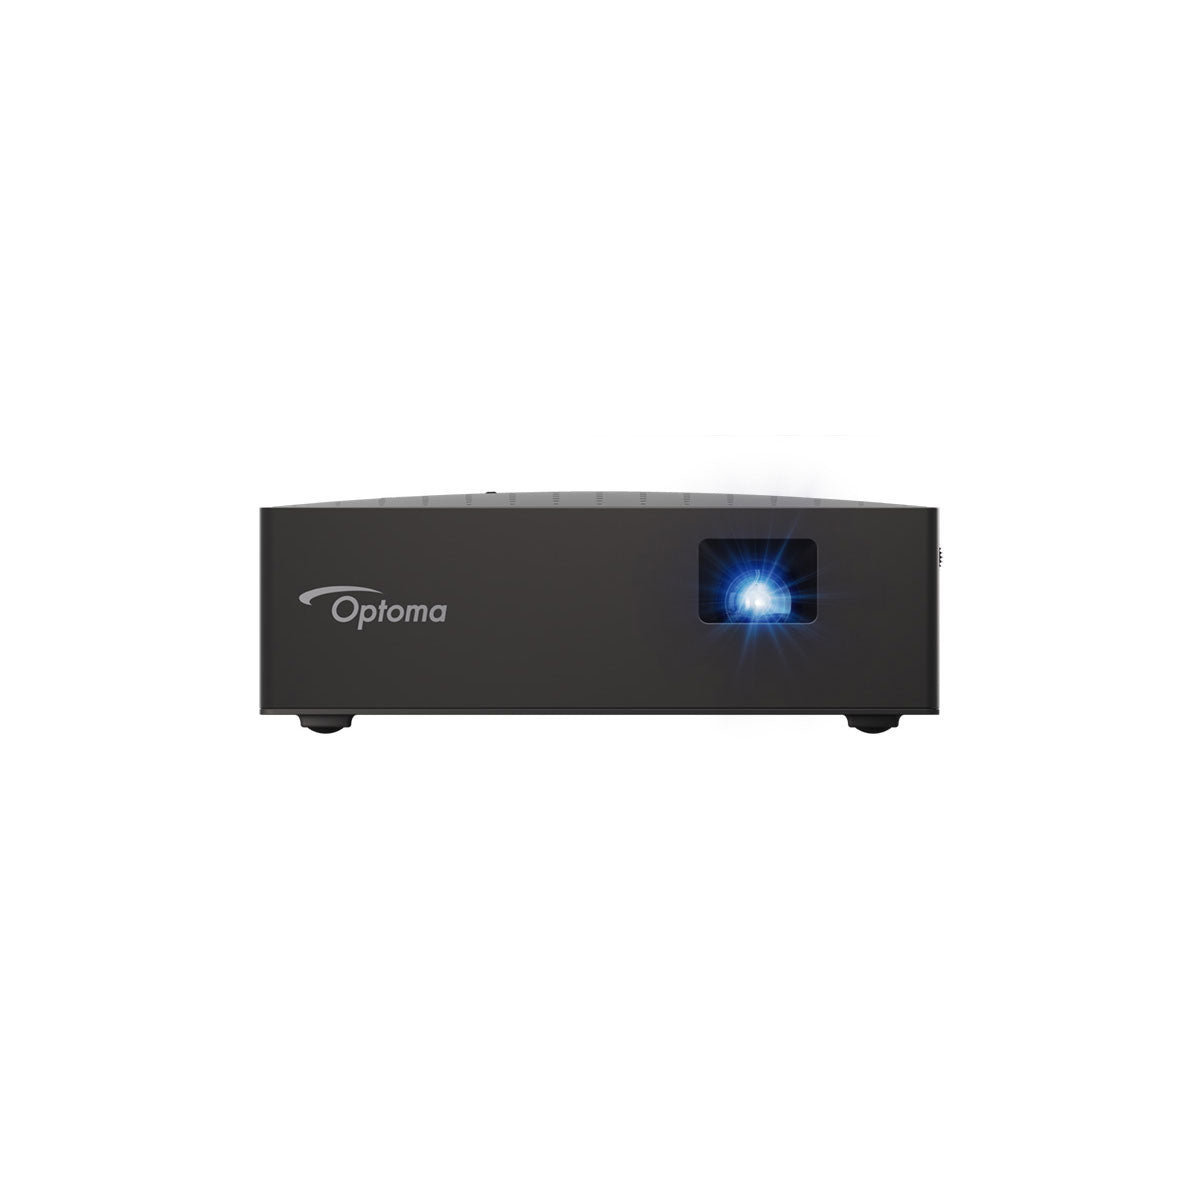 Optoma LV130 Portable projector